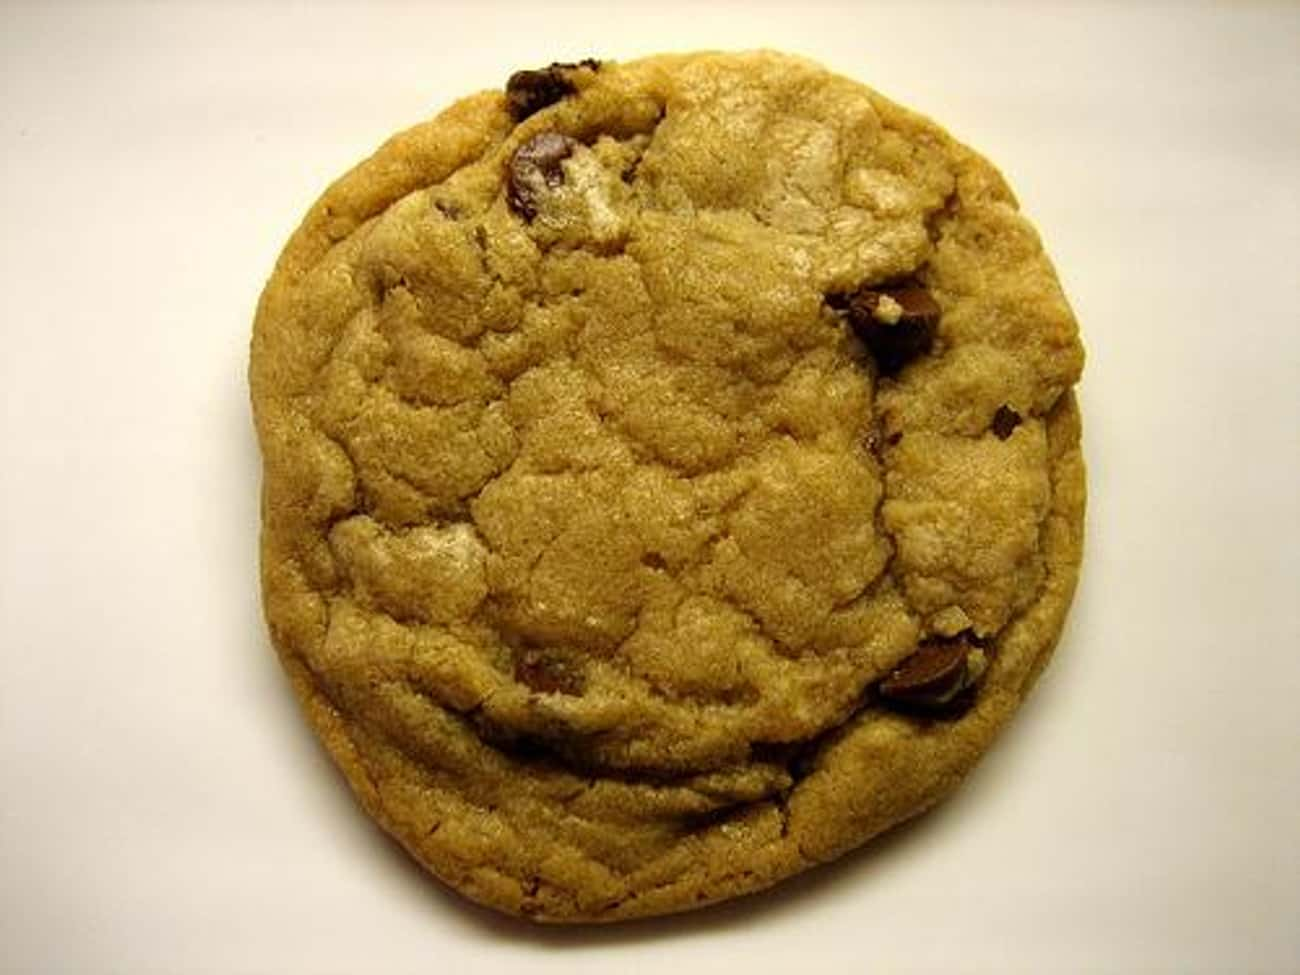 Chocolate Chip Cookies Were the Result of a Lack of Baker's Chocolate